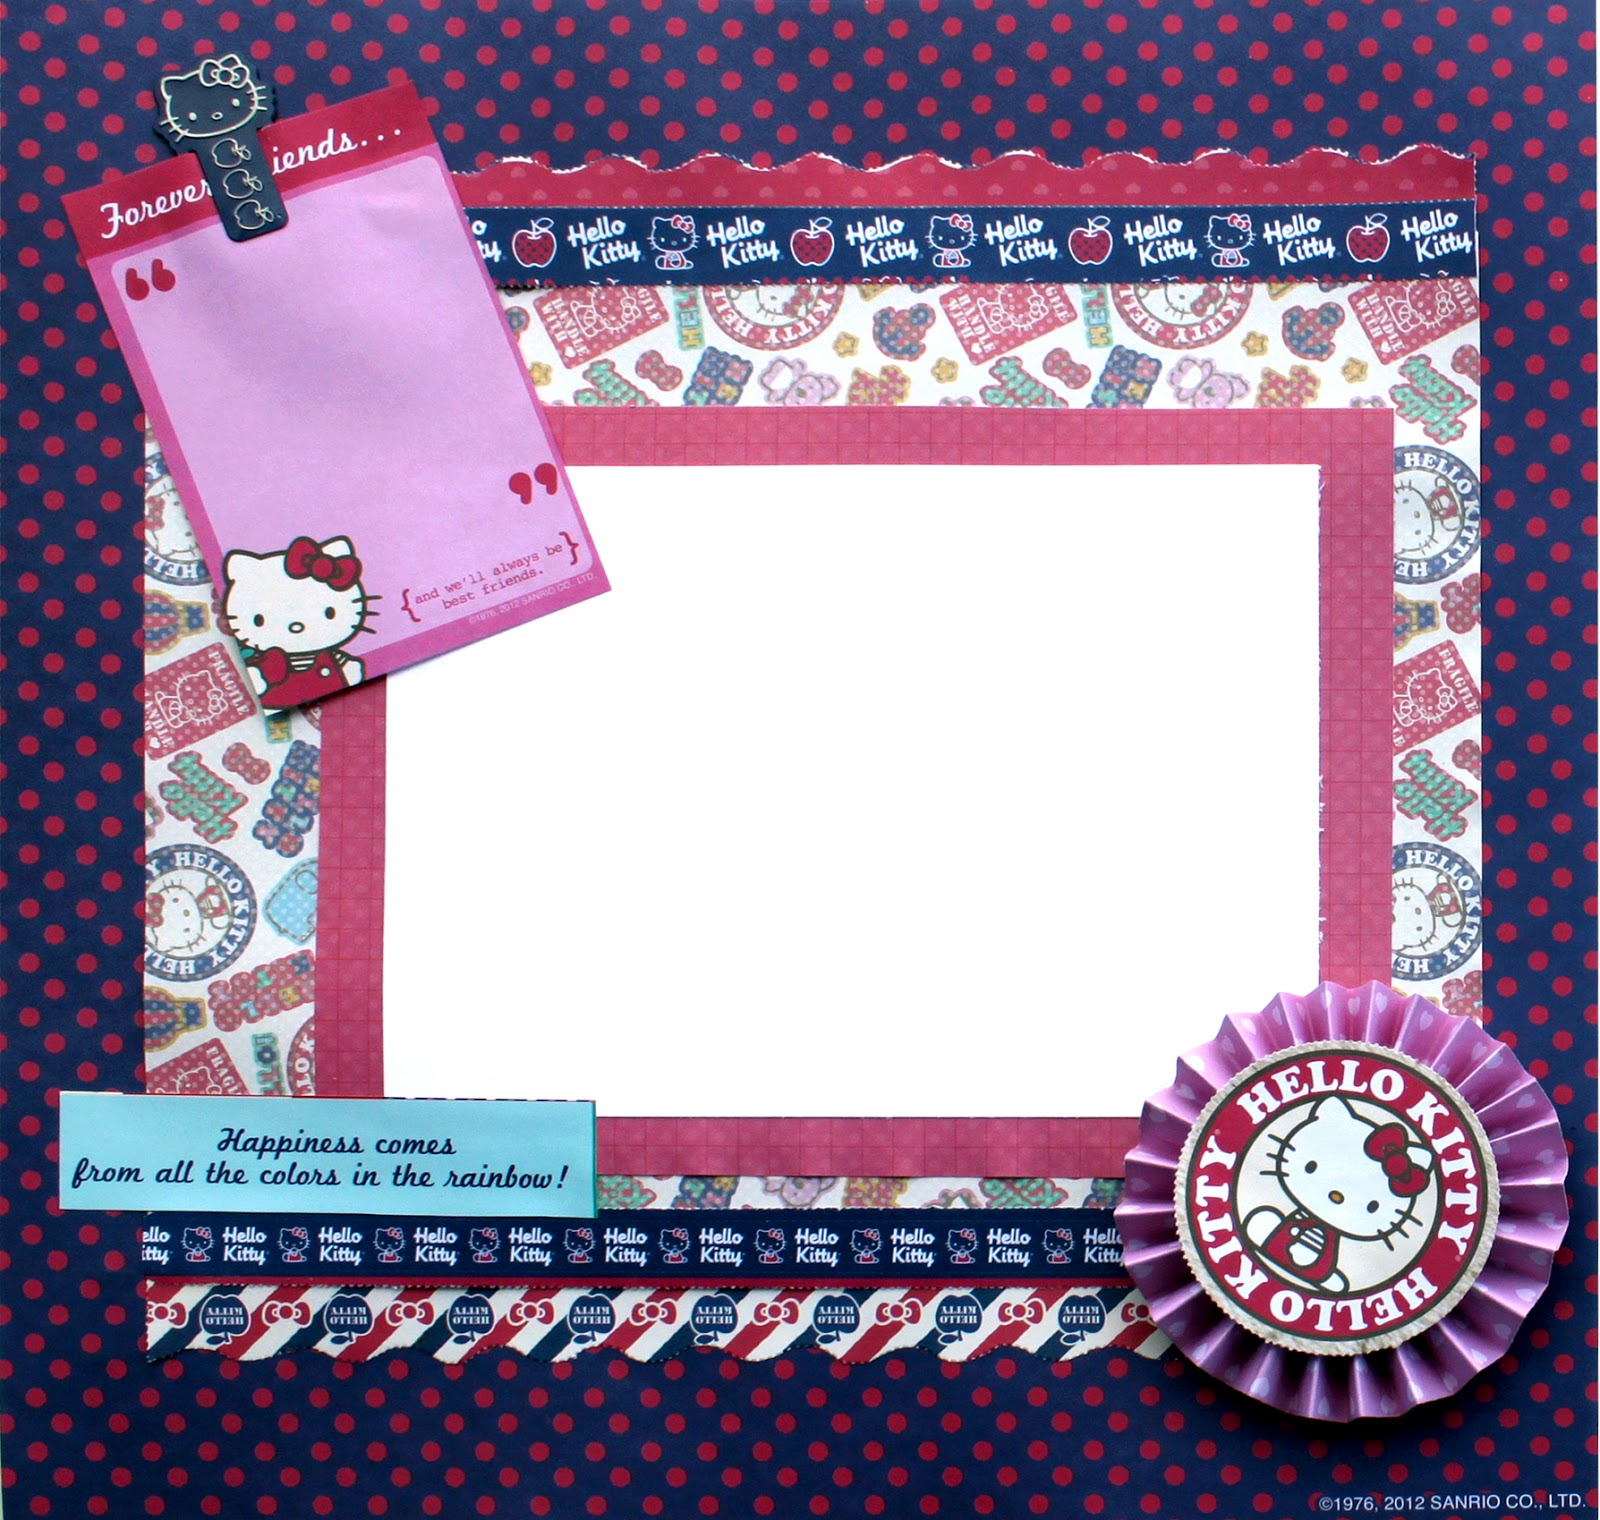 Scrapbook ideas hello kitty - With A Great Selection Of Coordinating Patterned Papers And Embellishments You Can Create Pages Cards Gift Bags And Tags Picks Memo Clips